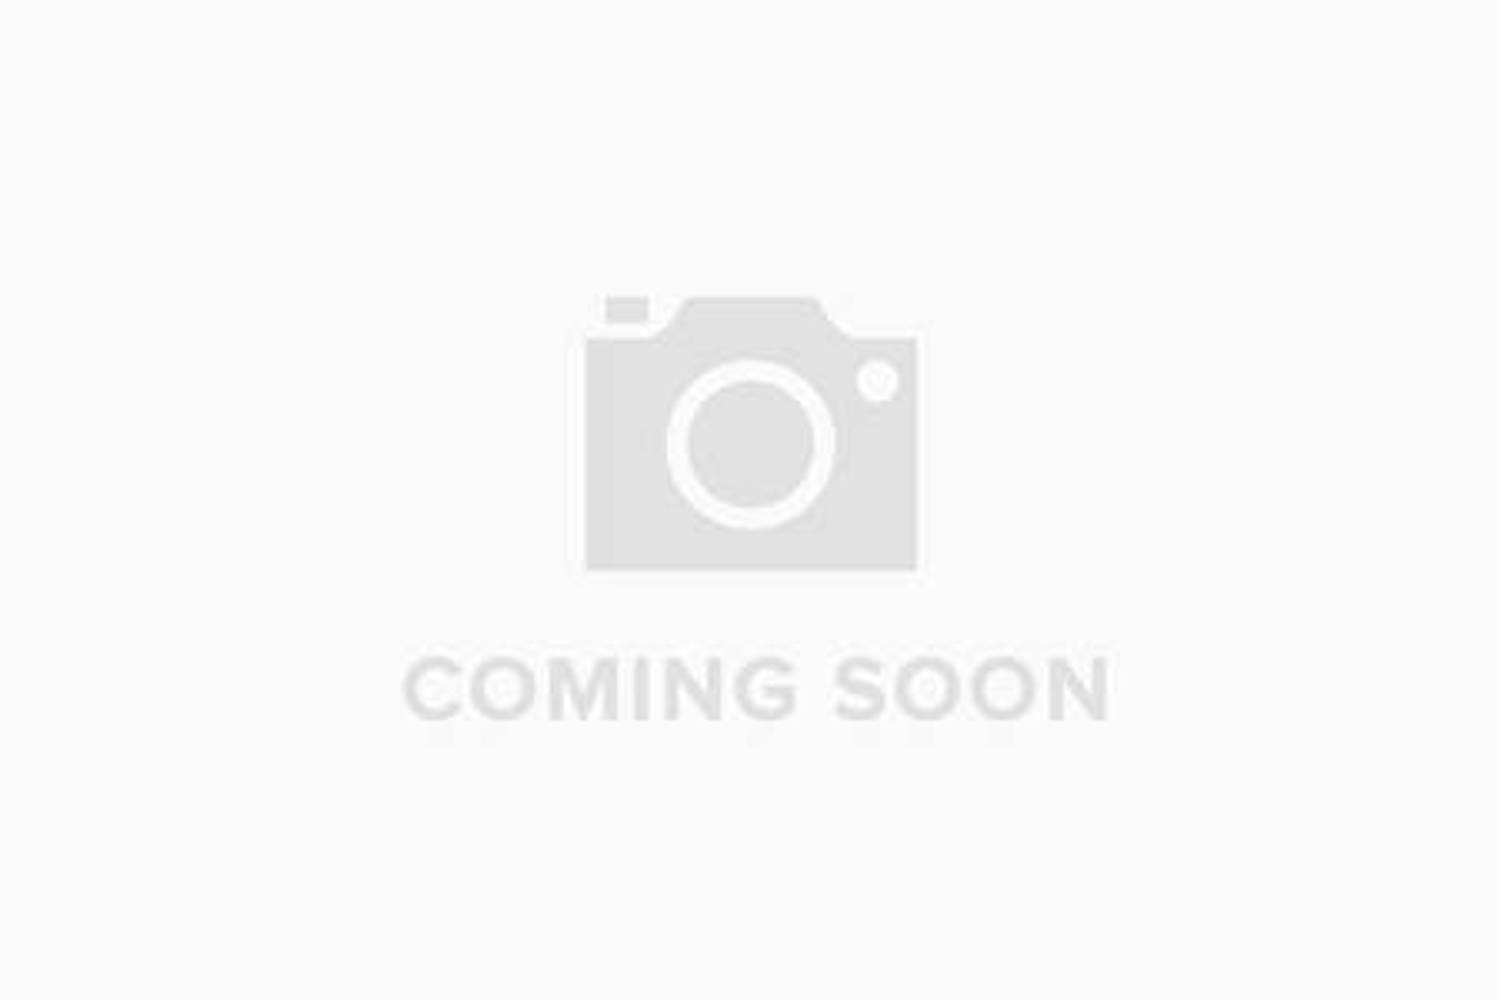 2018 Volkswagen Caravelle Diesel Estate Diesel 2.0 TDI BlueMotion Tech 150 Executive 5dr DSG in Acapulco Blue Metallic at Listers Volkswagen Van Centre Coventry